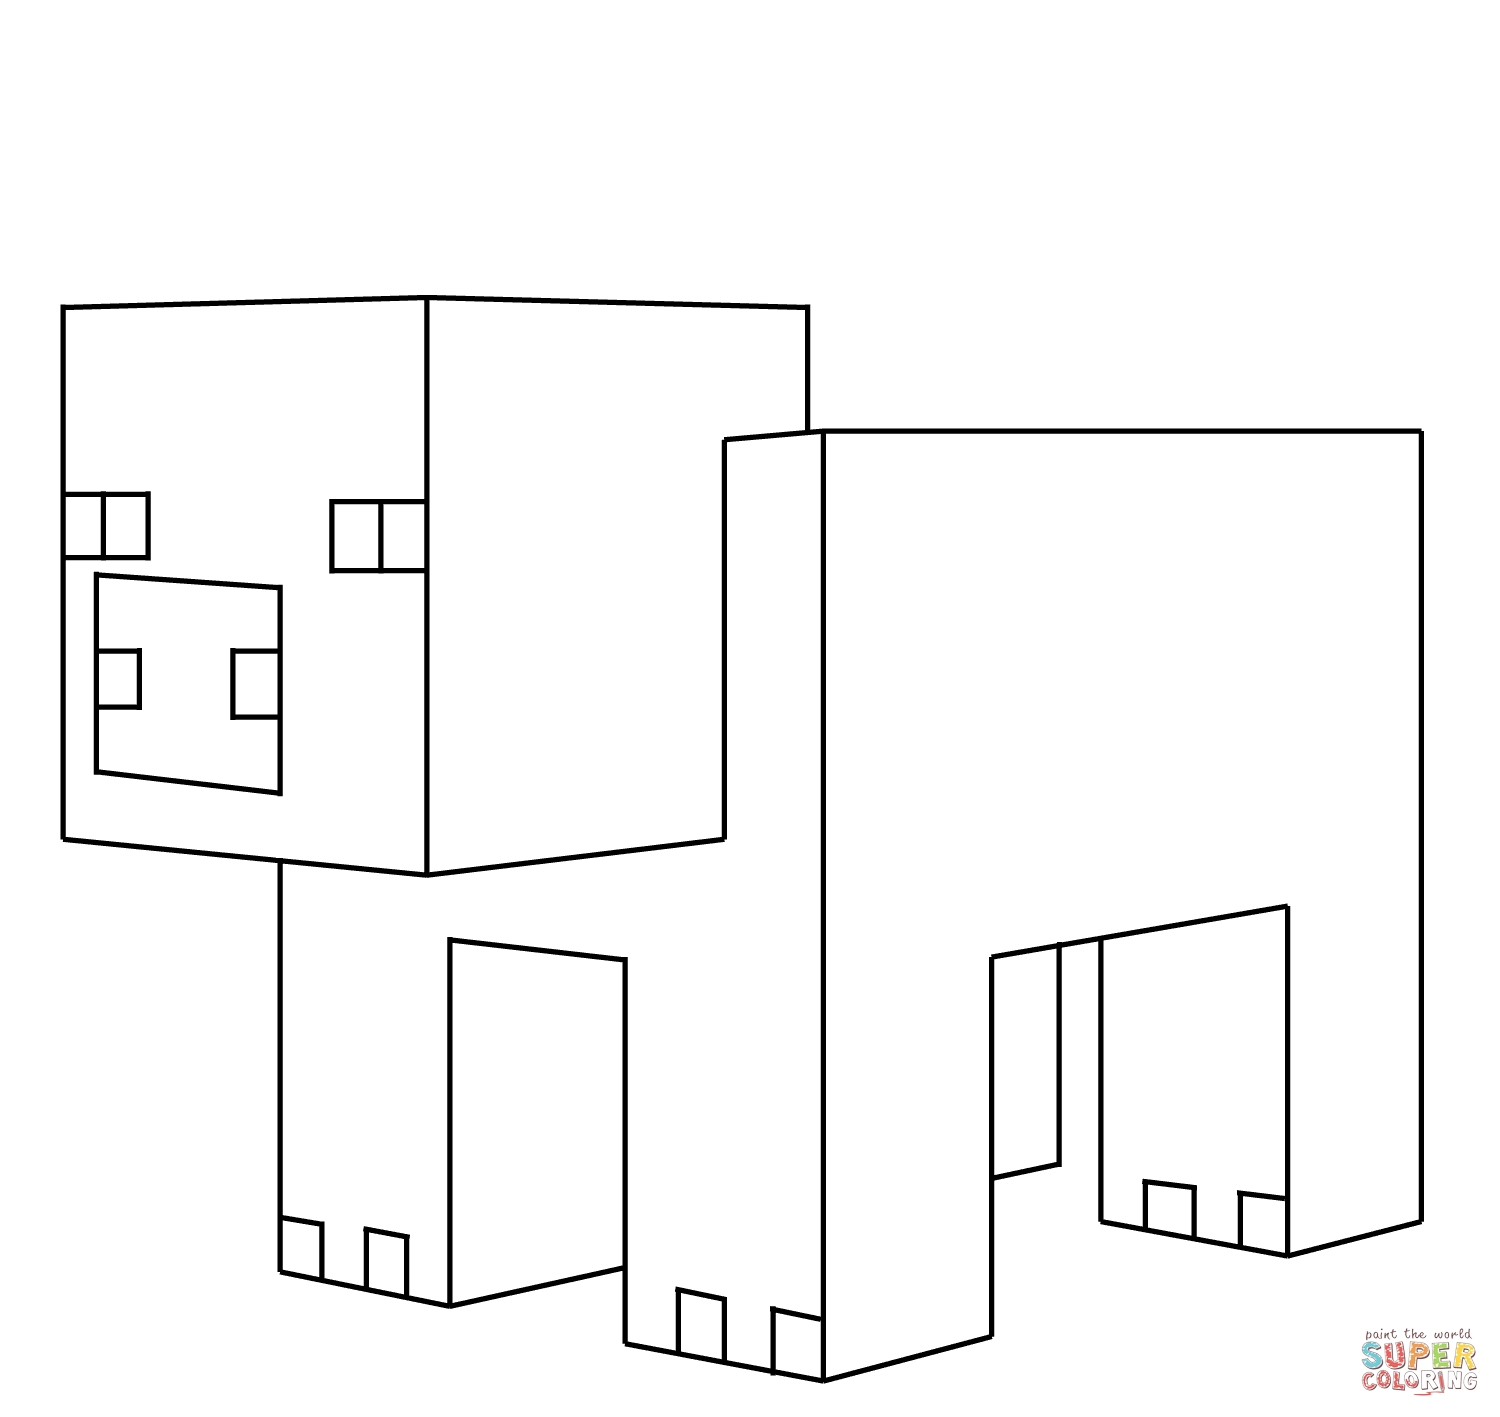 minecraft creeper coloring page - minecraft creeper coloring pages dowmload image